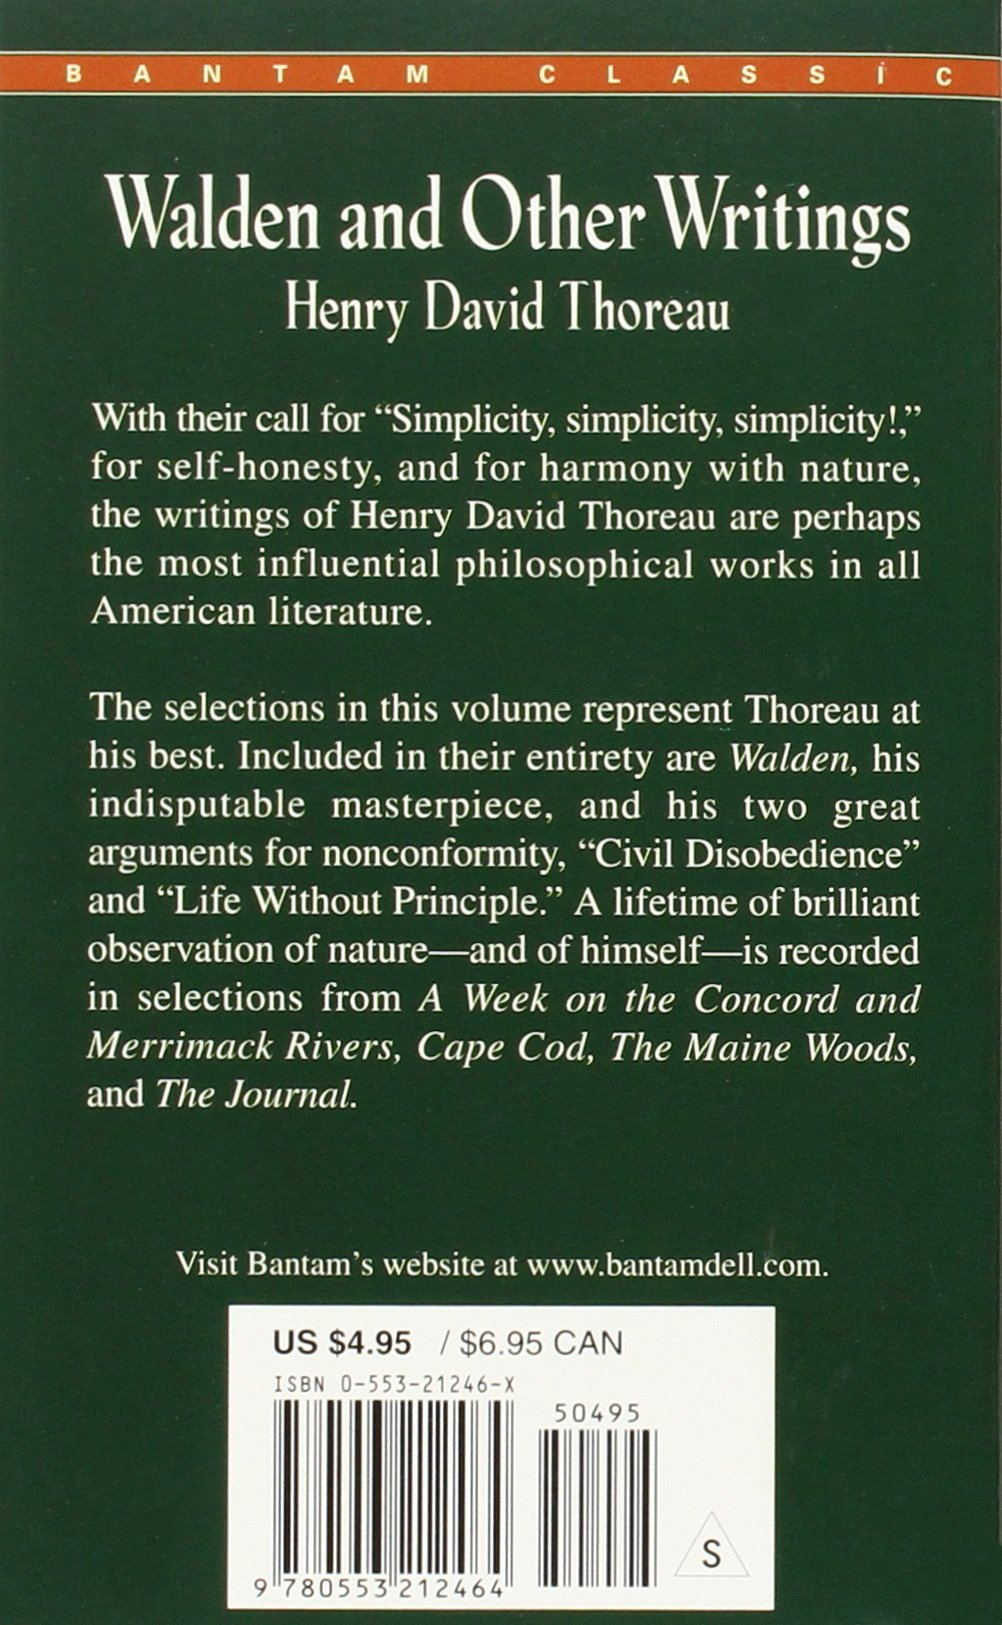 walden and other writings henry david thoreau  walden and other writings henry david thoreau 9780553212464 american literature amazon